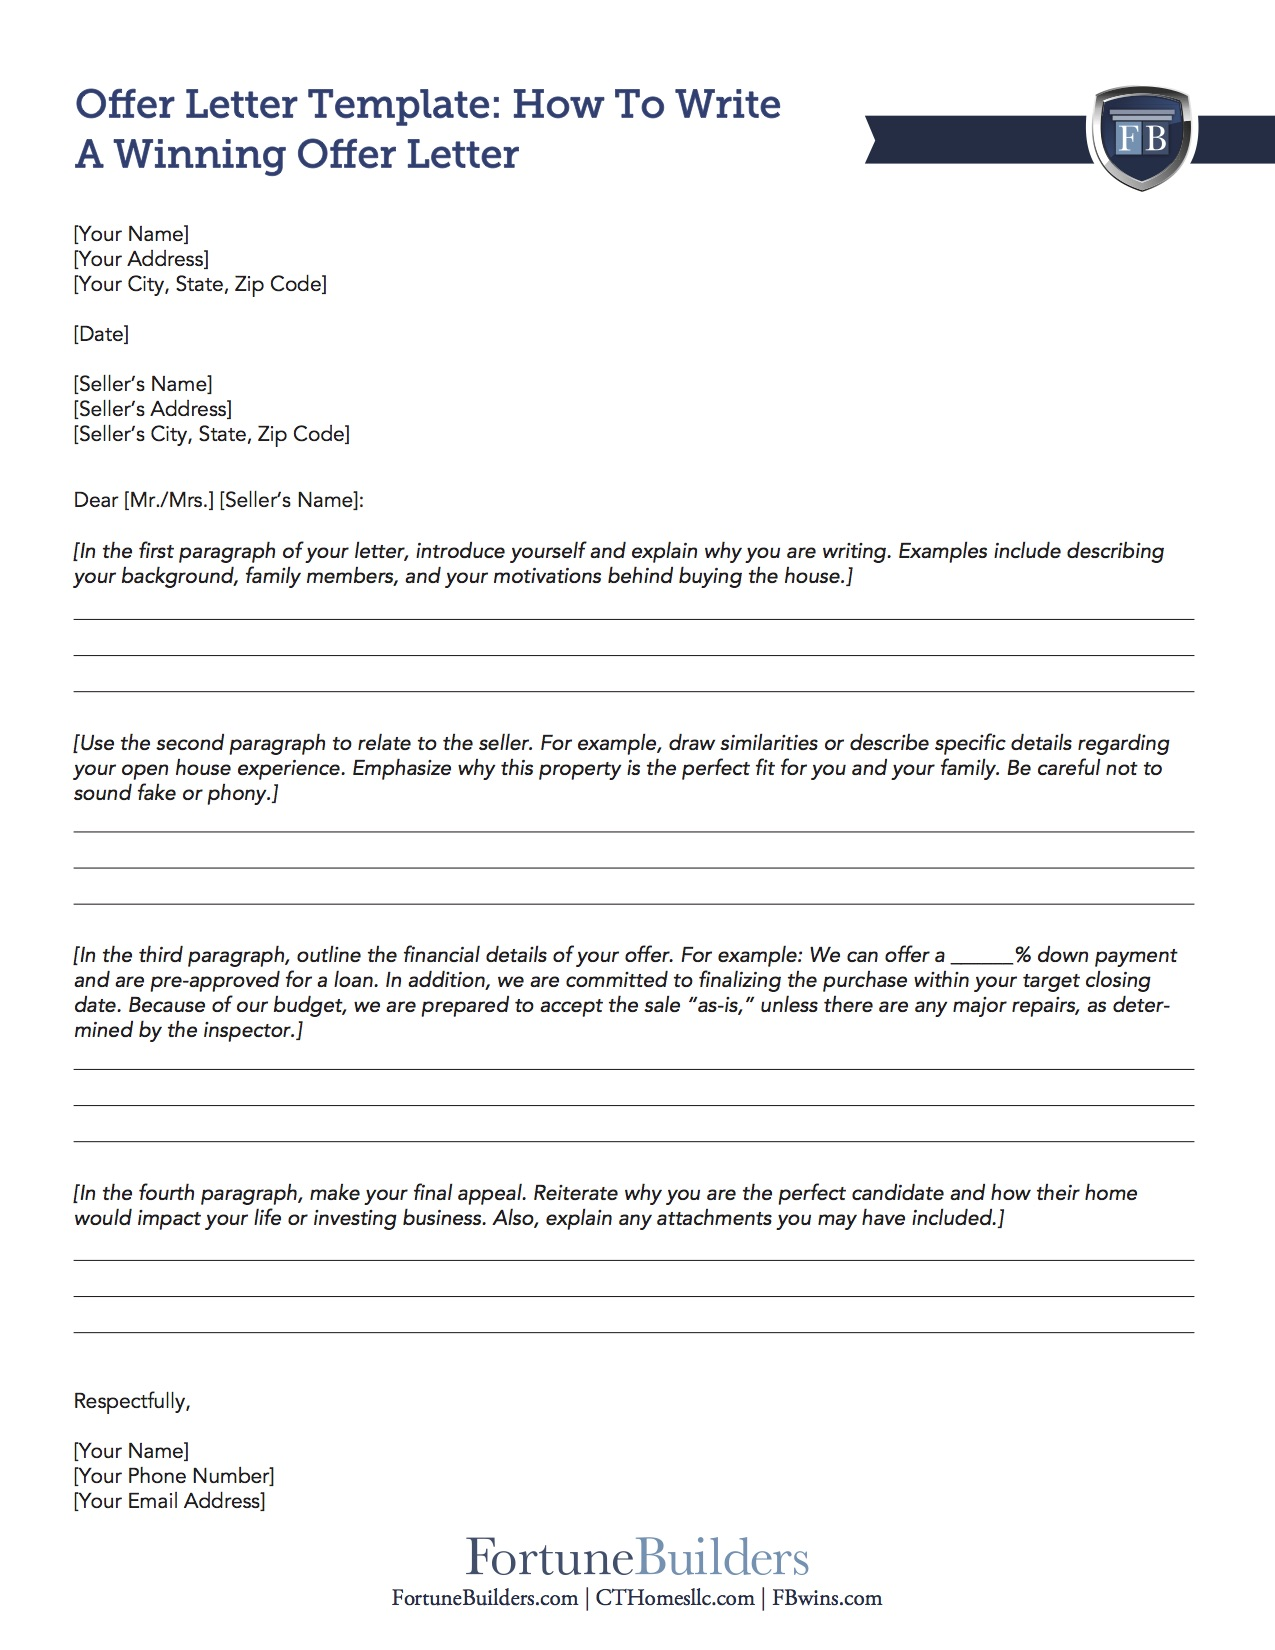 Free offer letter template for home buyers investors fortunebuilders click the image below to download the offer letter template which provides a professional layout and will help you brainstorm talking points for when you flashek